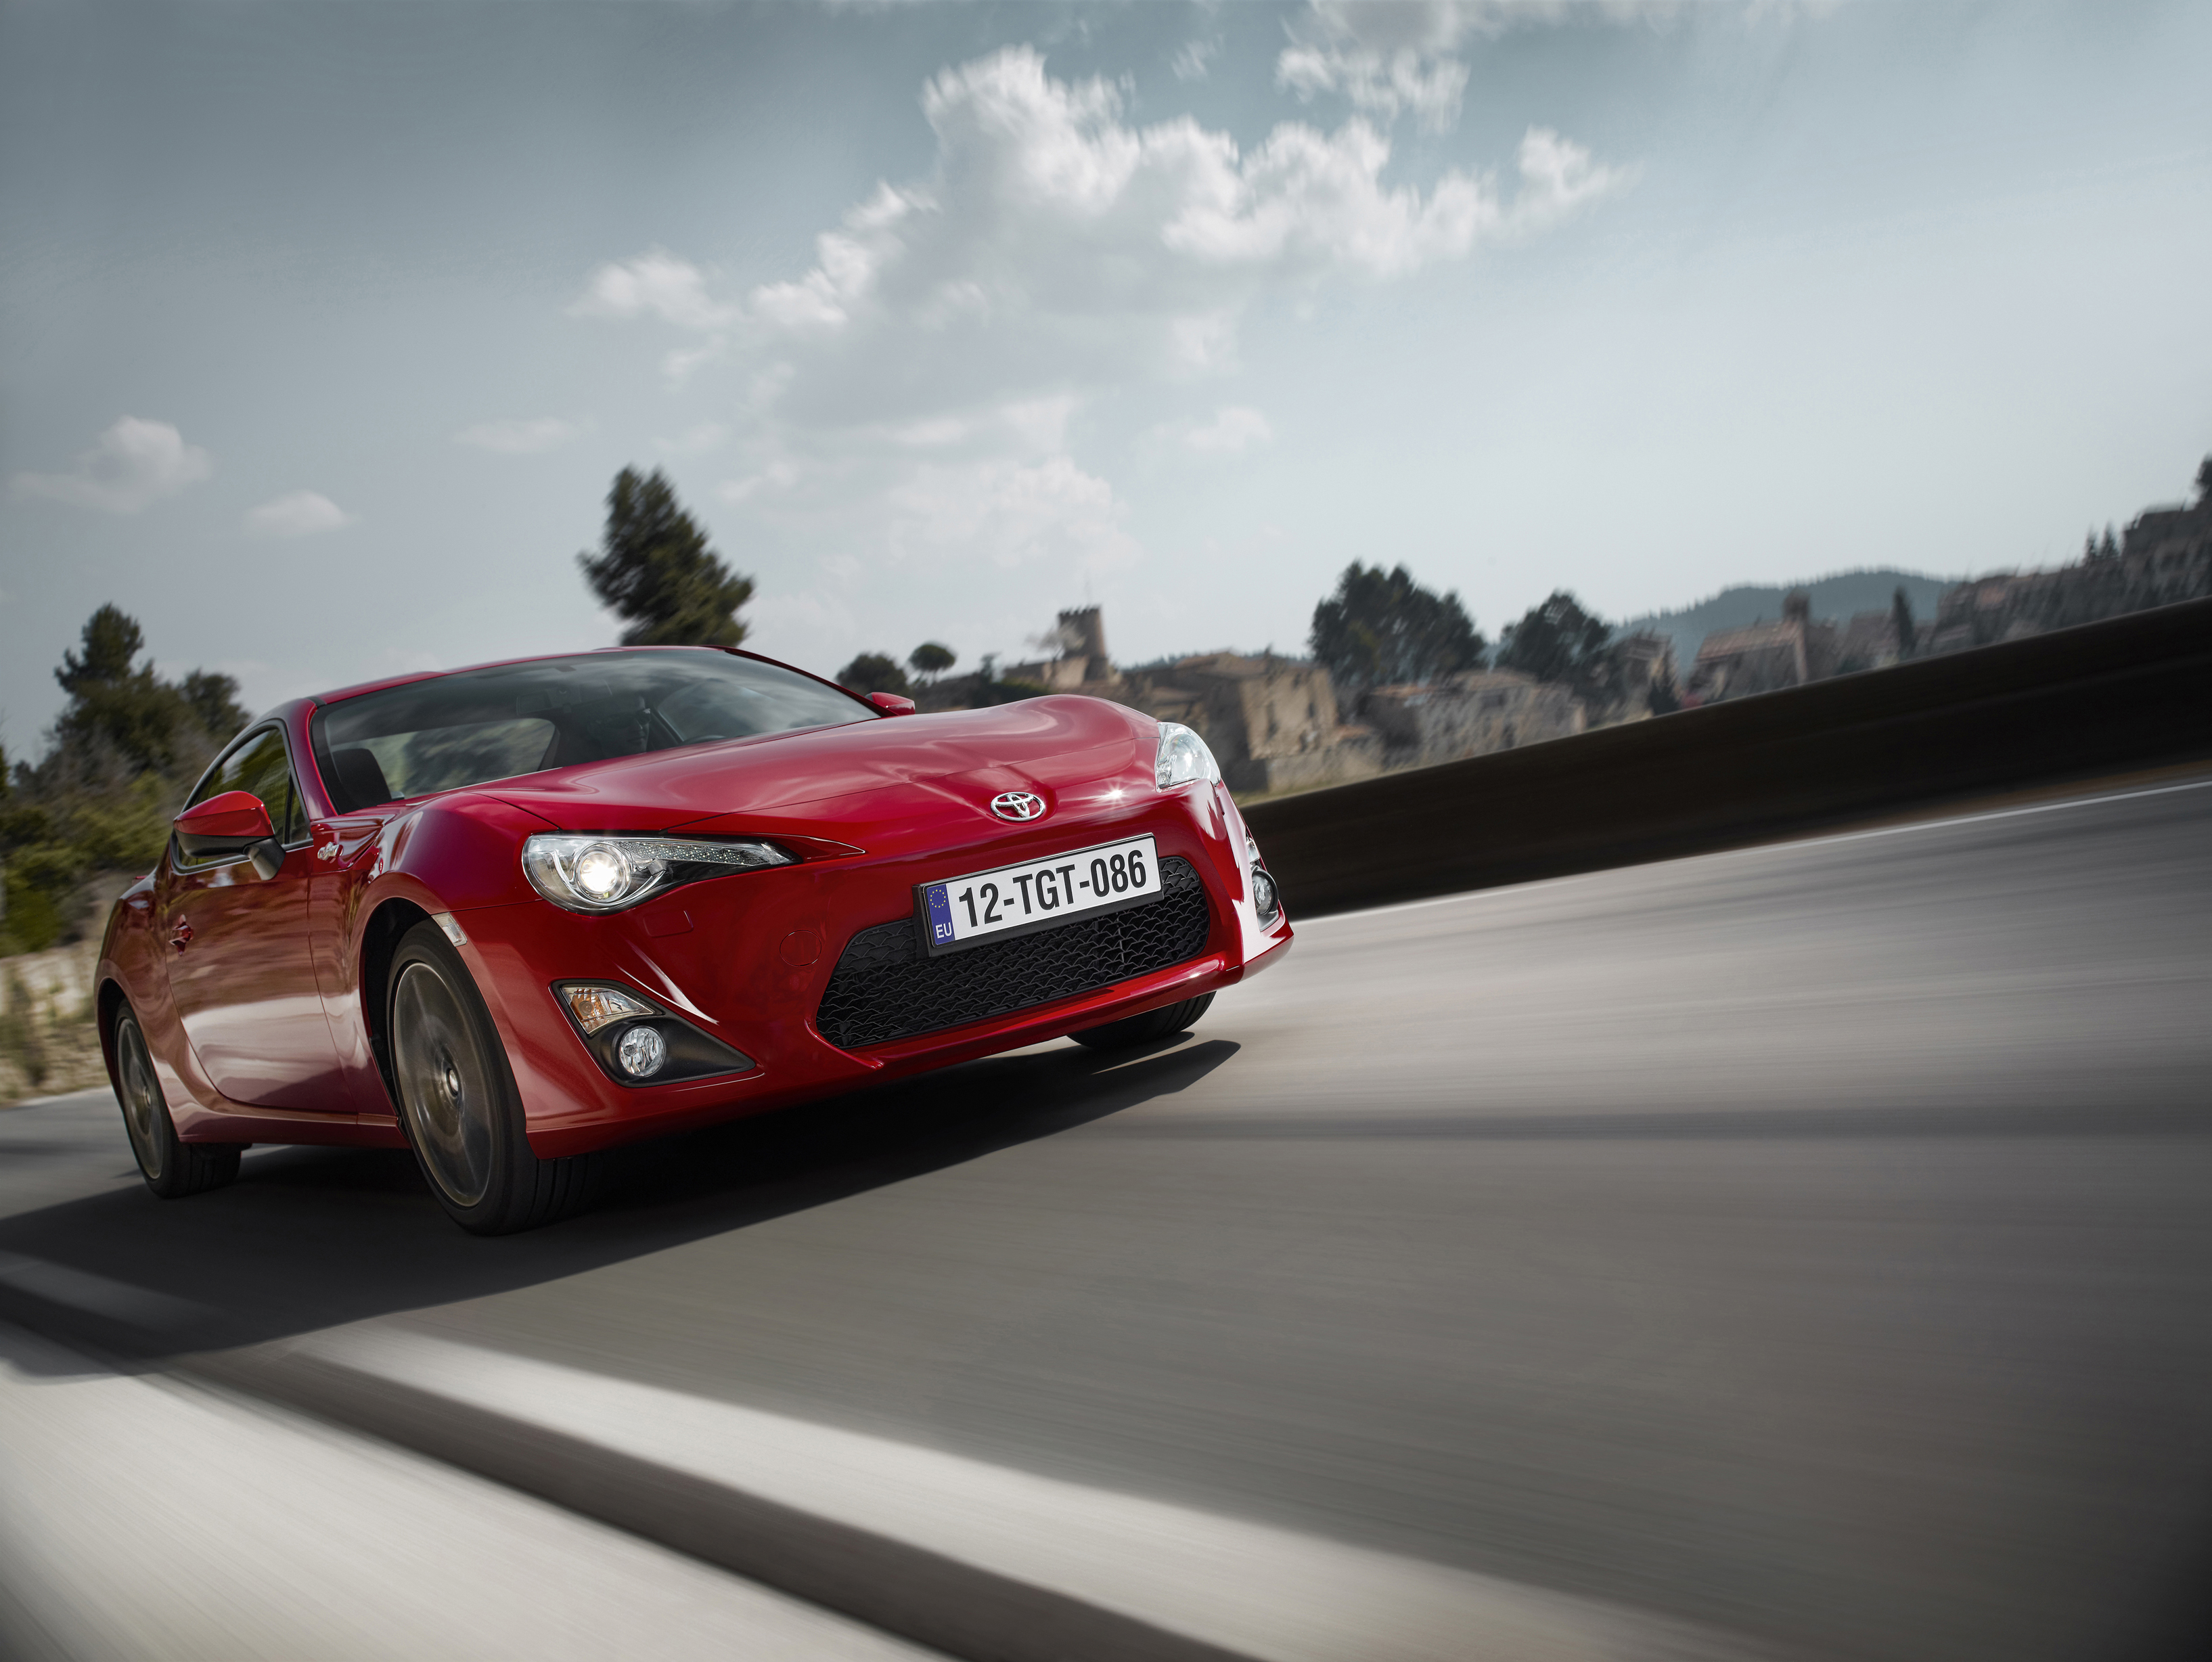 Gt86 Car Wallpaper Gt86 Model Year 2015 Excitement Retuned Toyota Europe